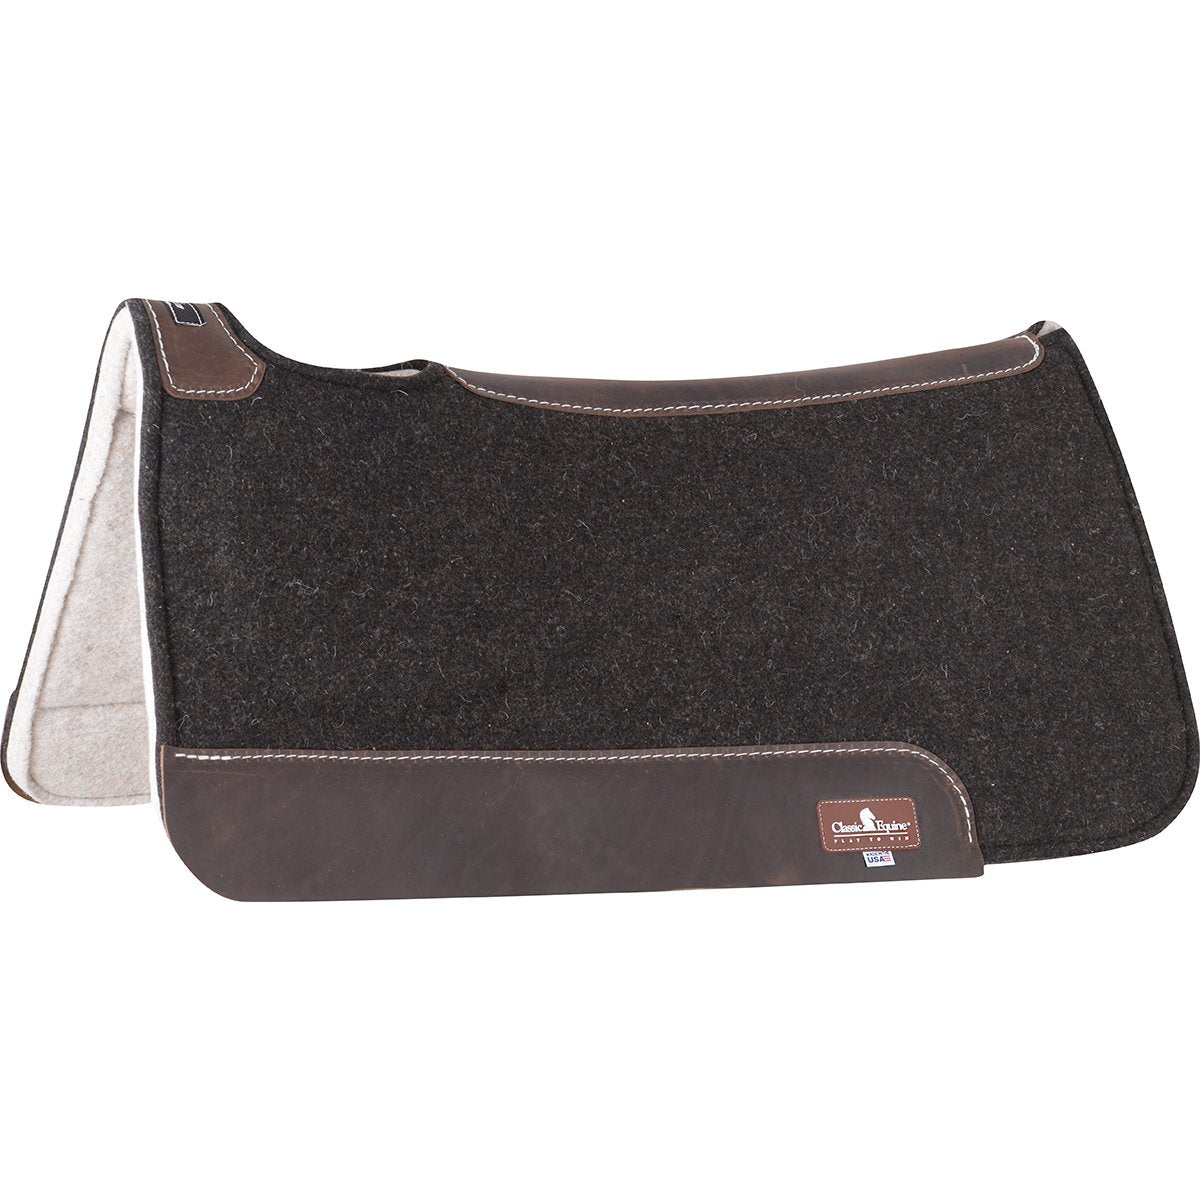 /collections/saddle-pads